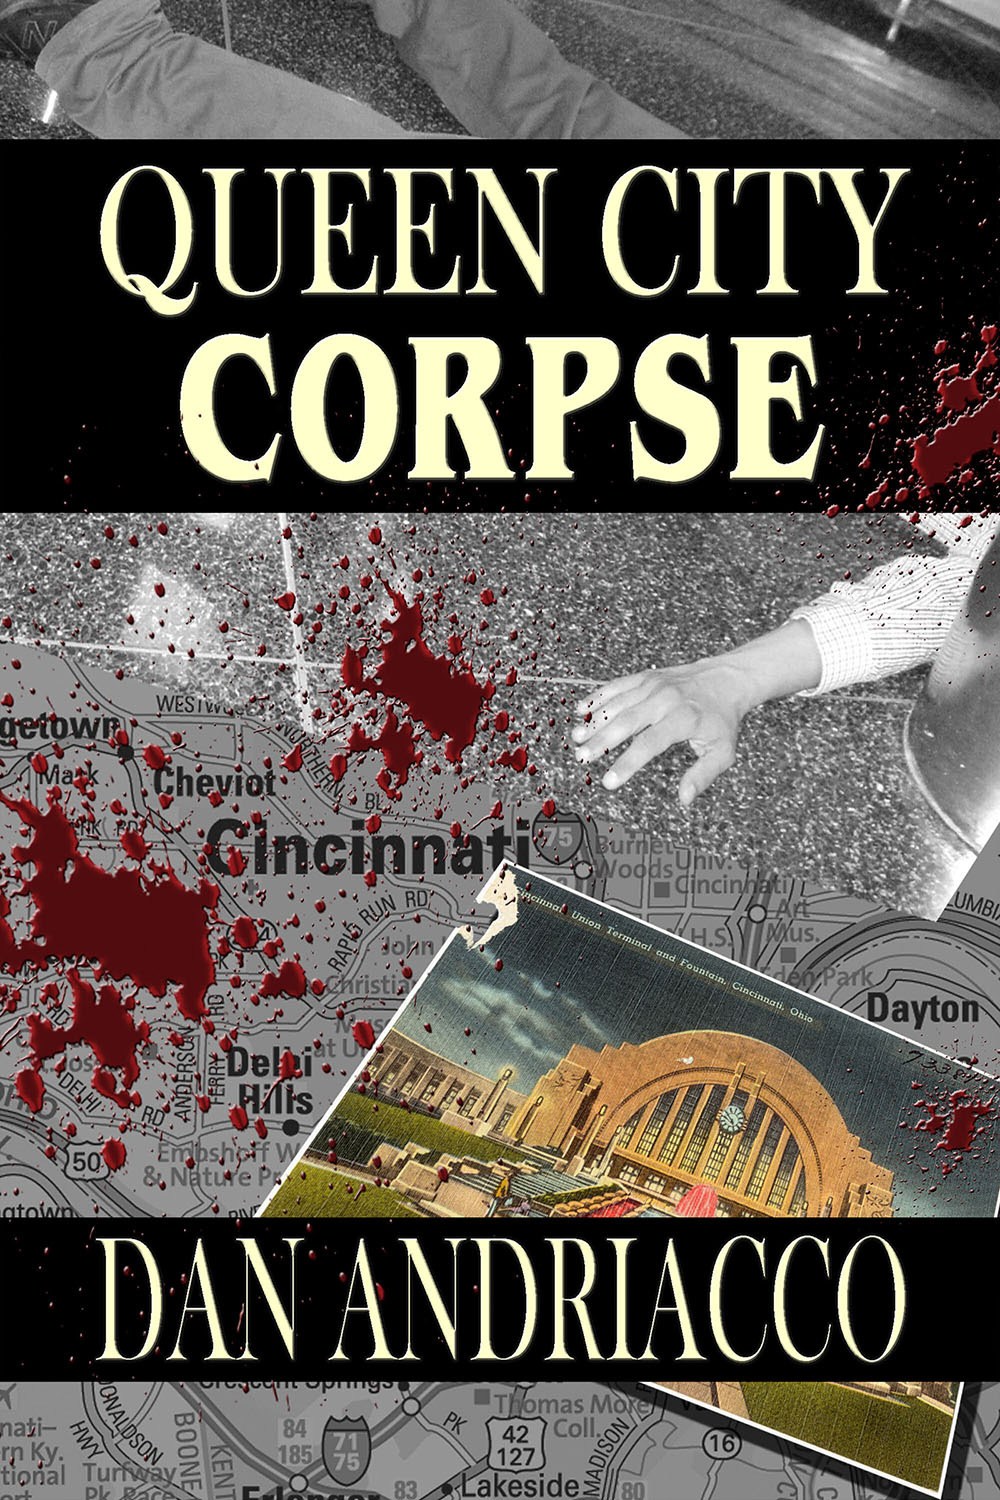 Andriacco, Dan - Queen City Corpse, ebook